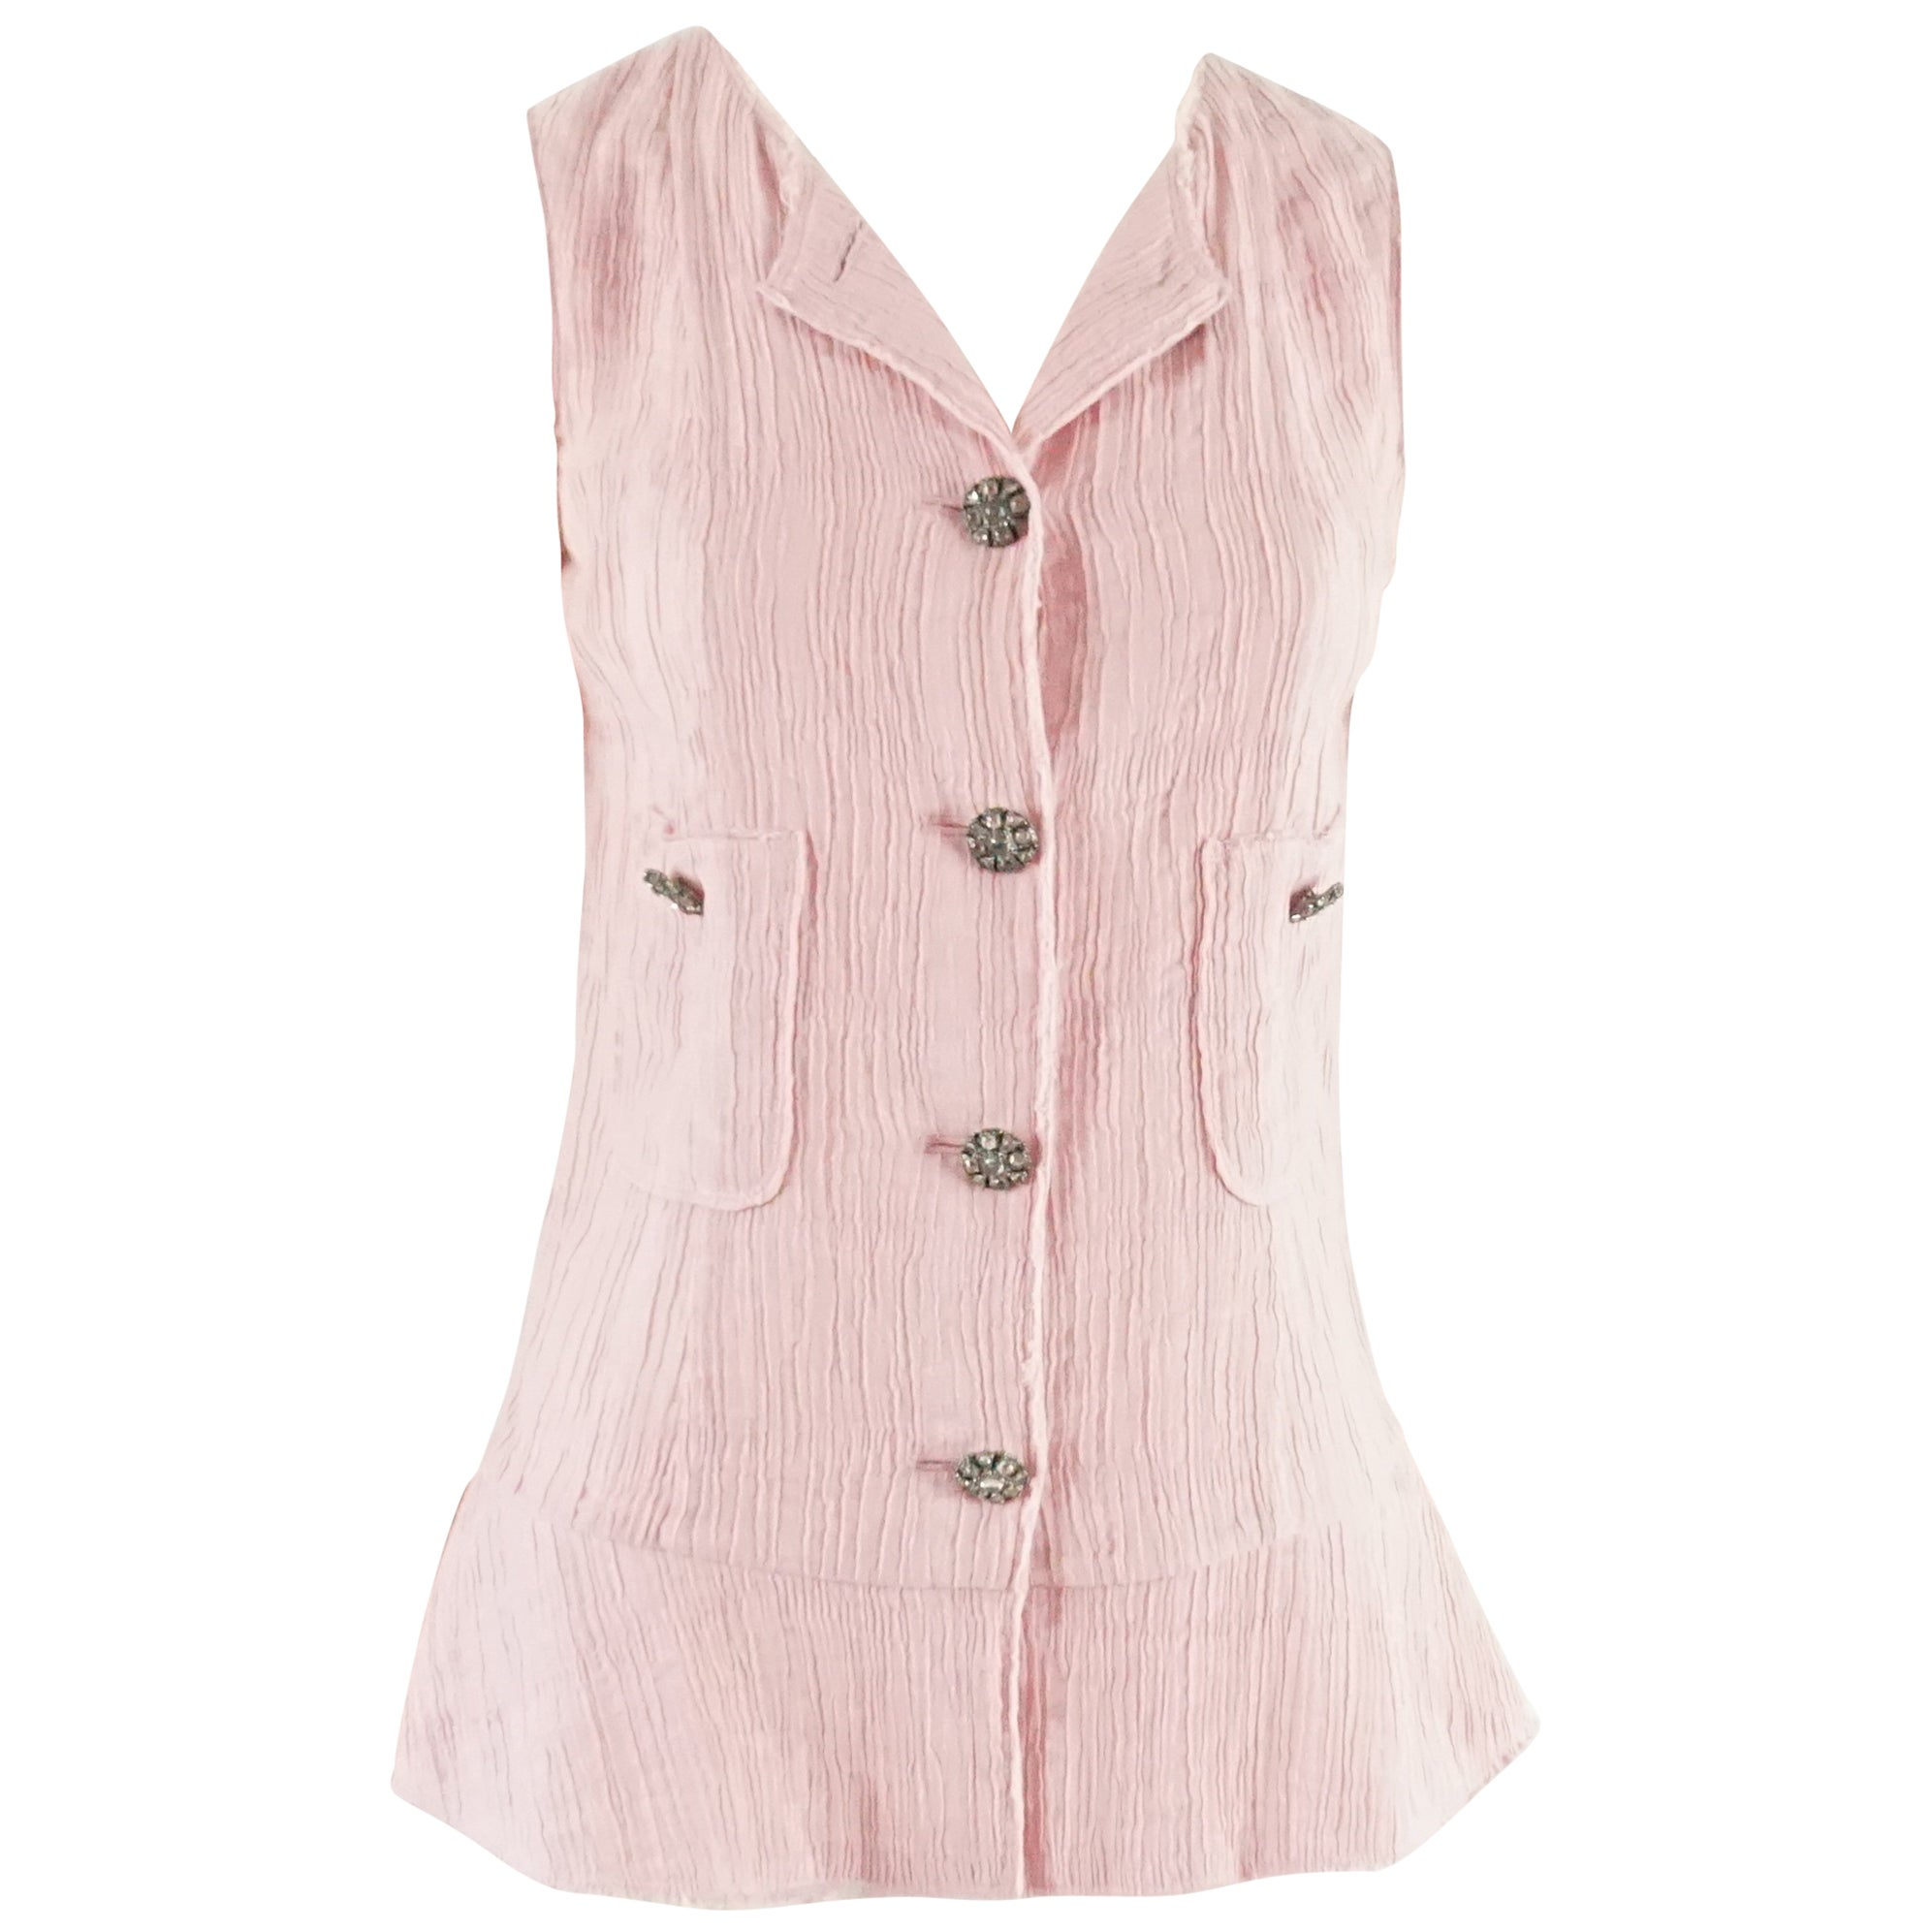 Chanel Pink Cotton Blend Top with Pink & White Gripoix Buttons - 34